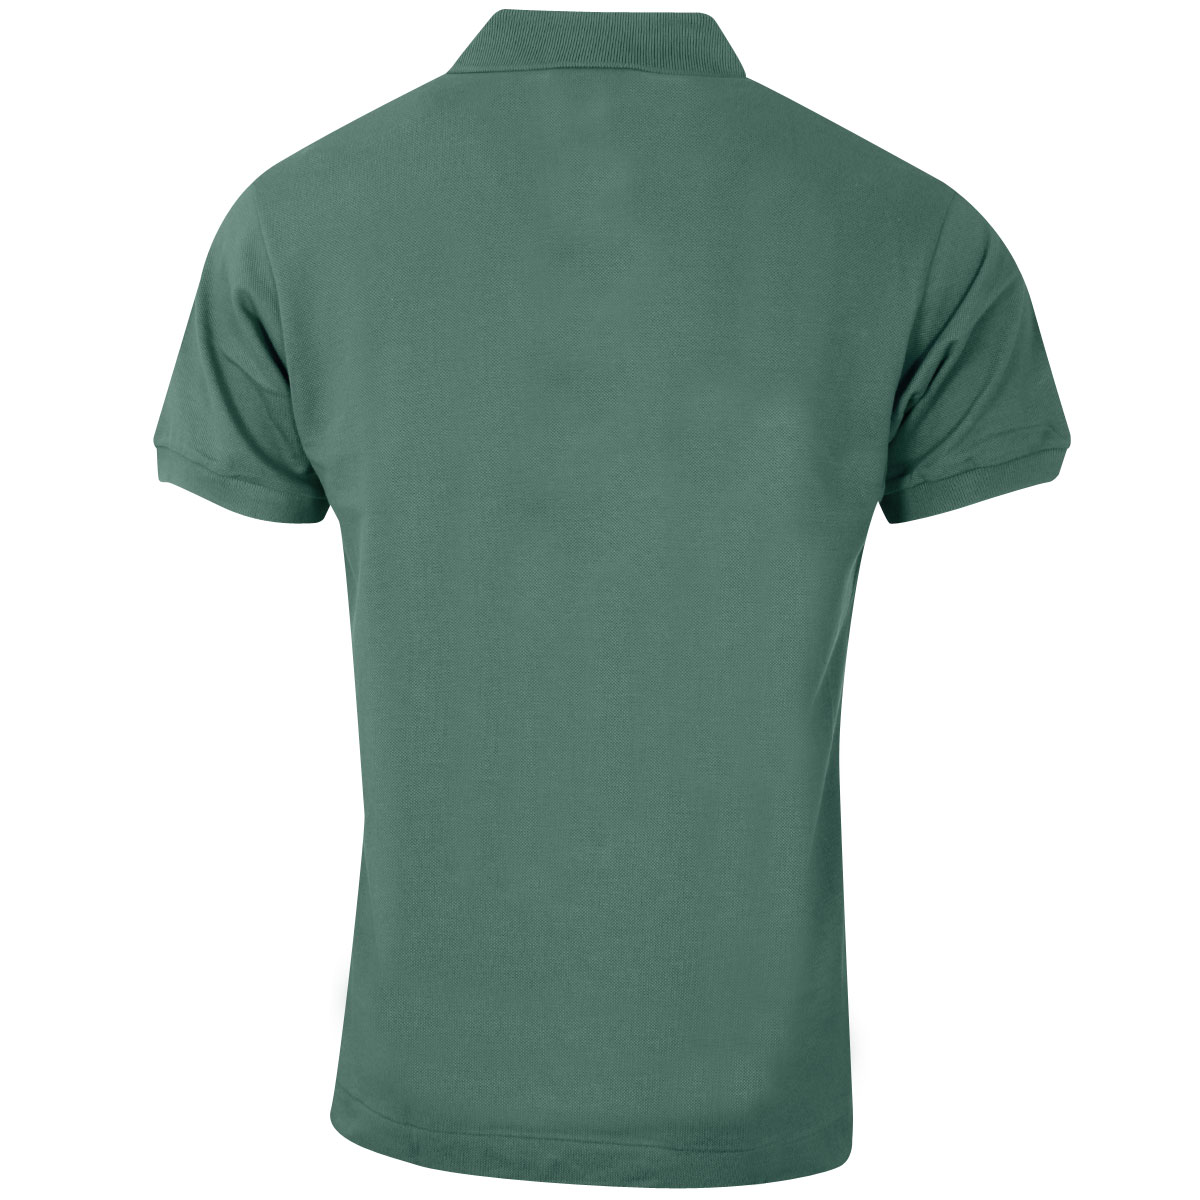 Lacoste-Mens-Classic-Cotton-L1212-Short-Sleeve-Polo-Shirt-26-OFF-RRP thumbnail 32